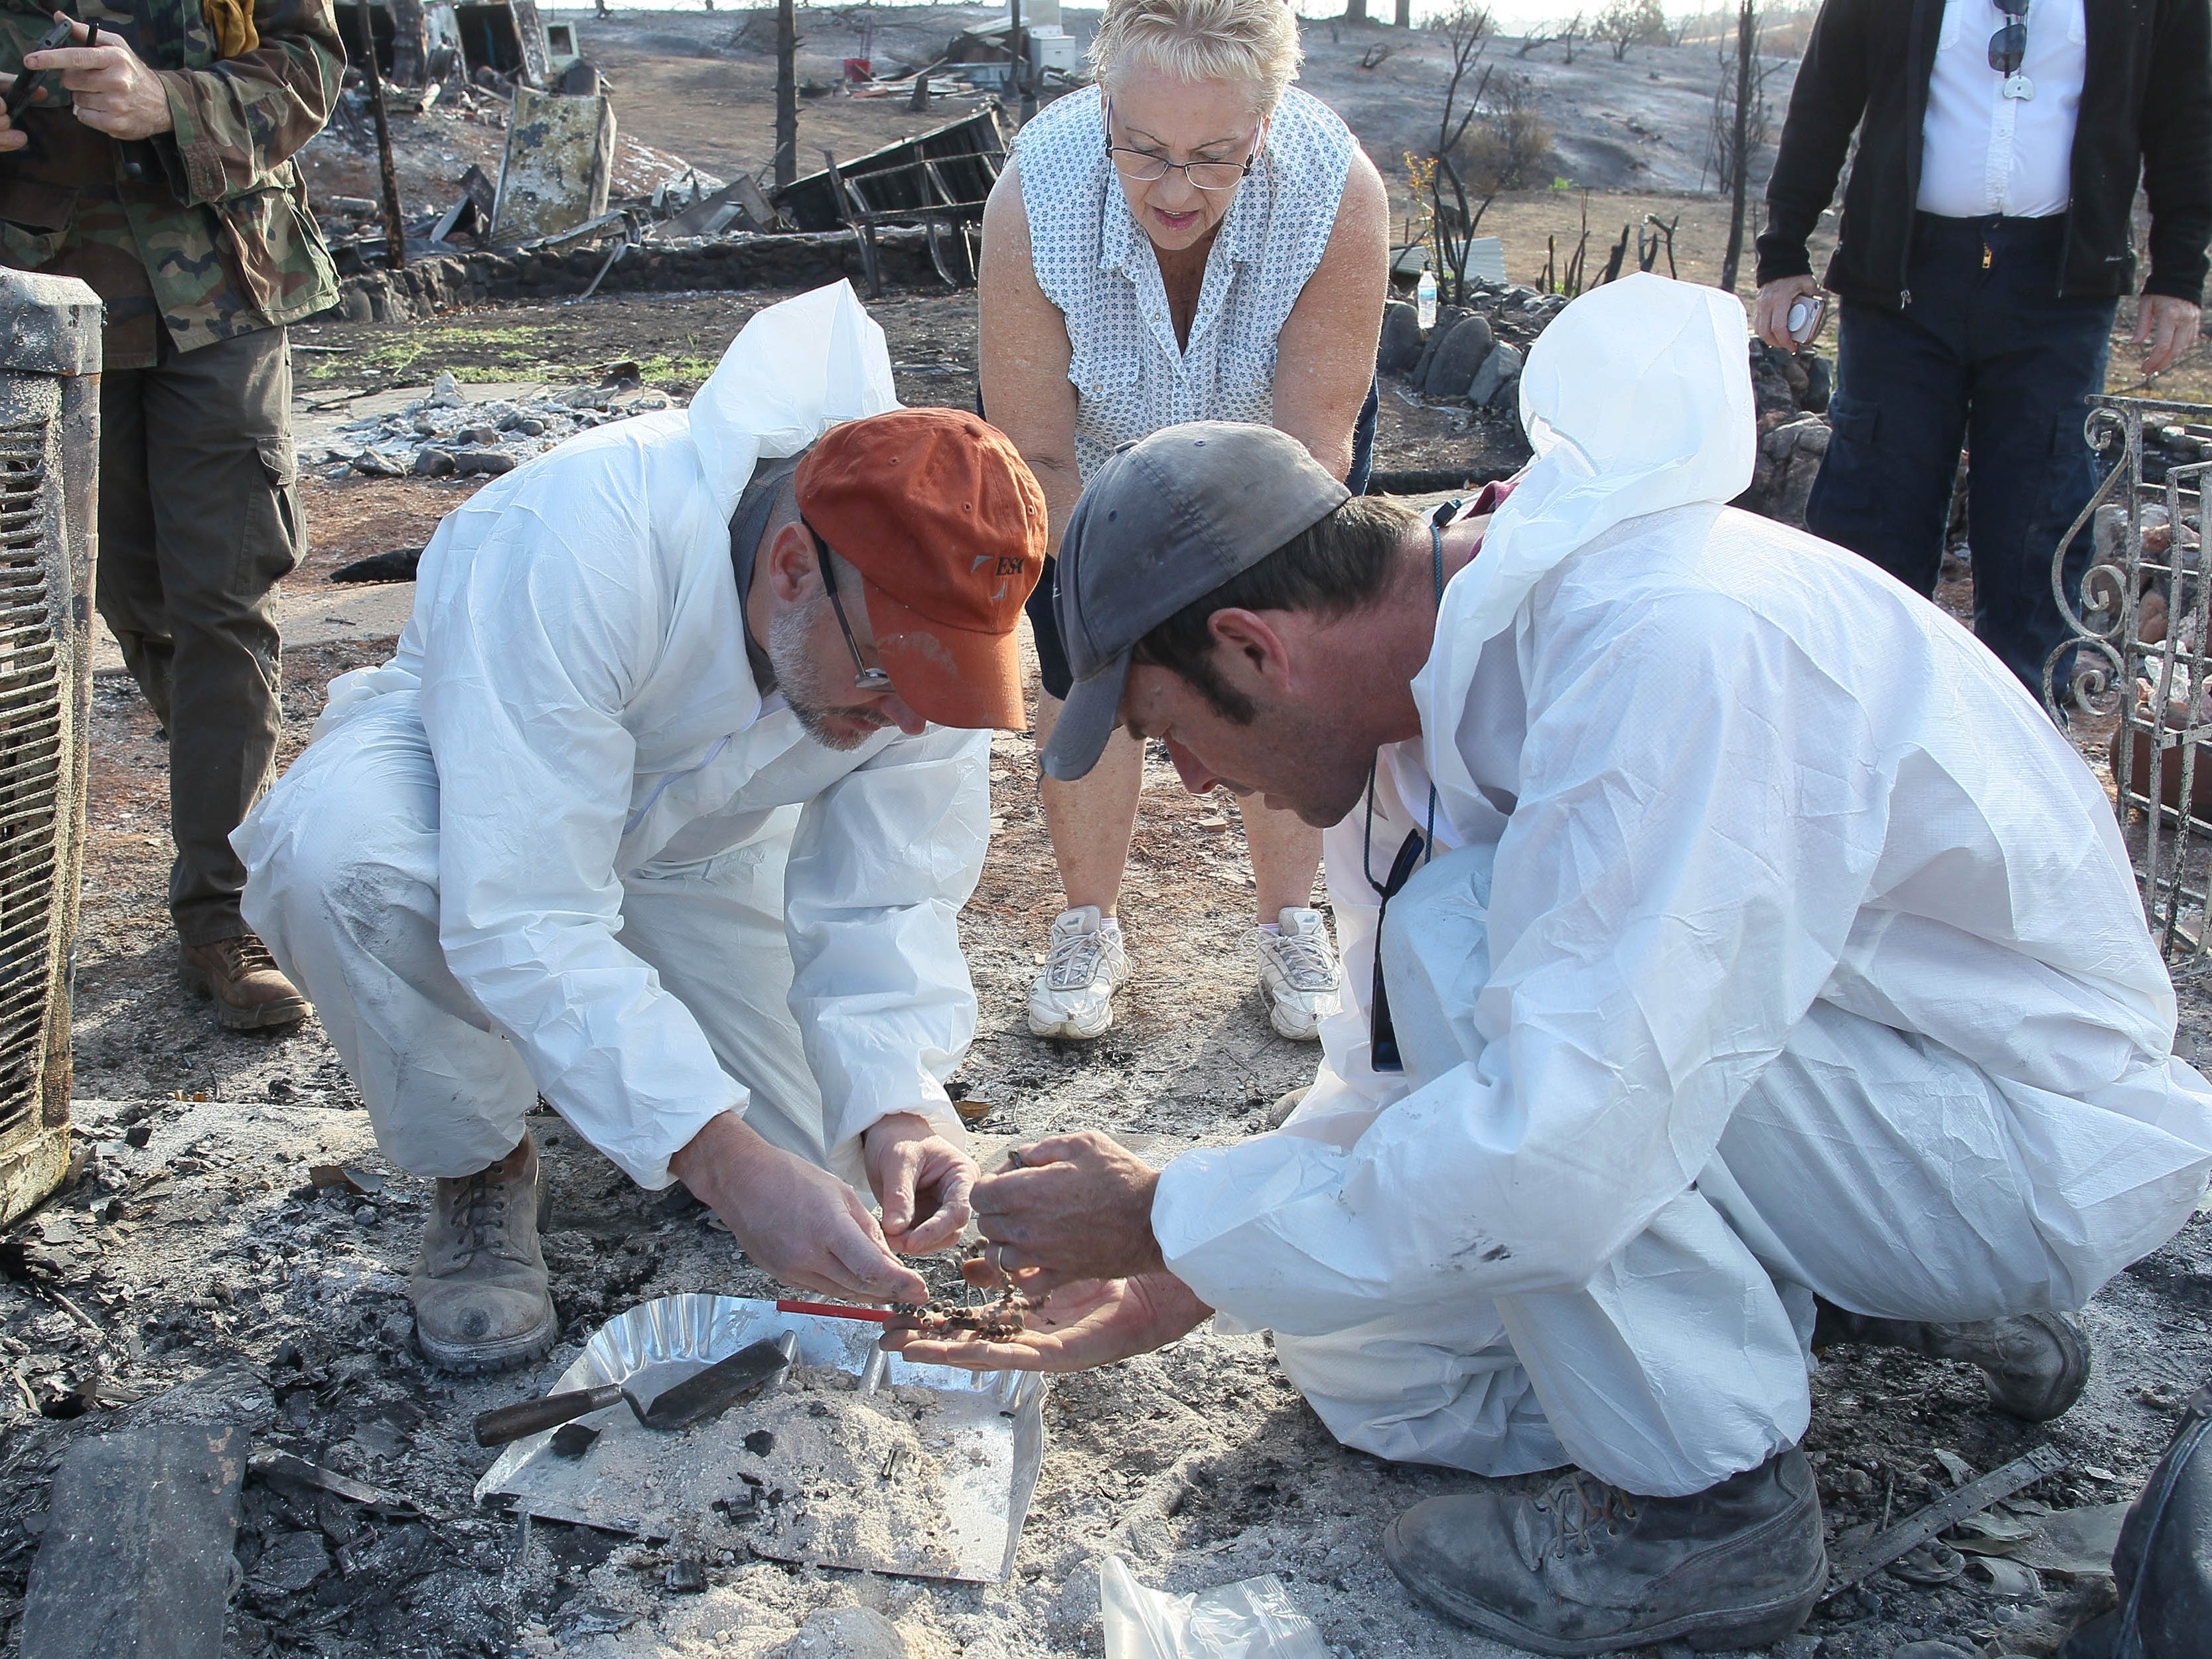 Archaeologists Mike Newland, left, and Alex Degeorgey recover cremains of Bonnie Martin's late husband's ex-wife at the burned-out home in Keswick.